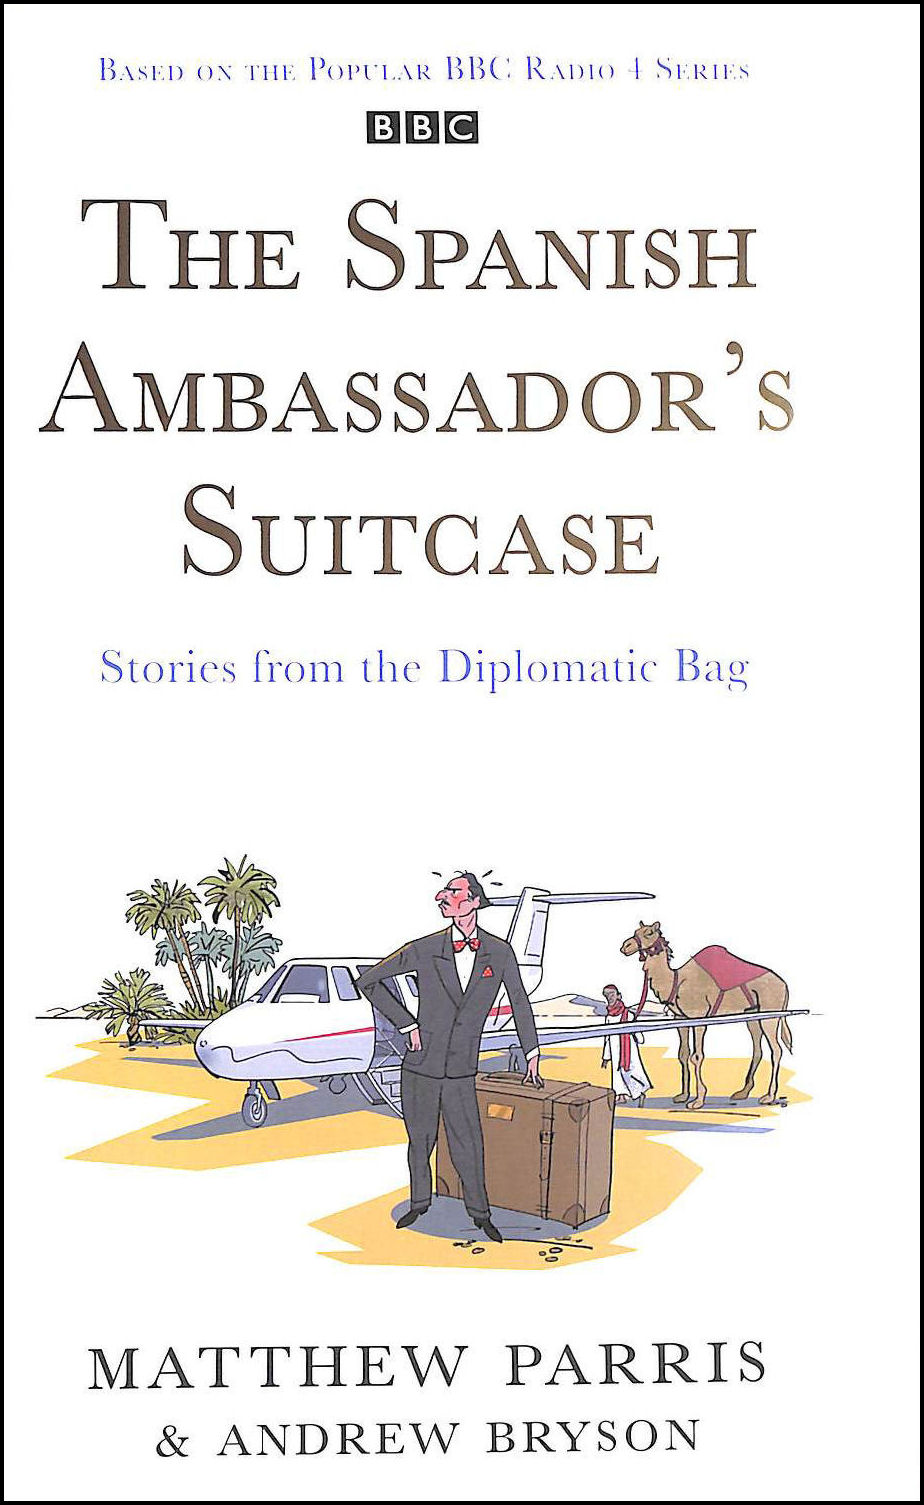 The Spanish Ambassador's Suitcase: Stories from the Diplomatic Bag, Matthew Parris; Andrew Bryson